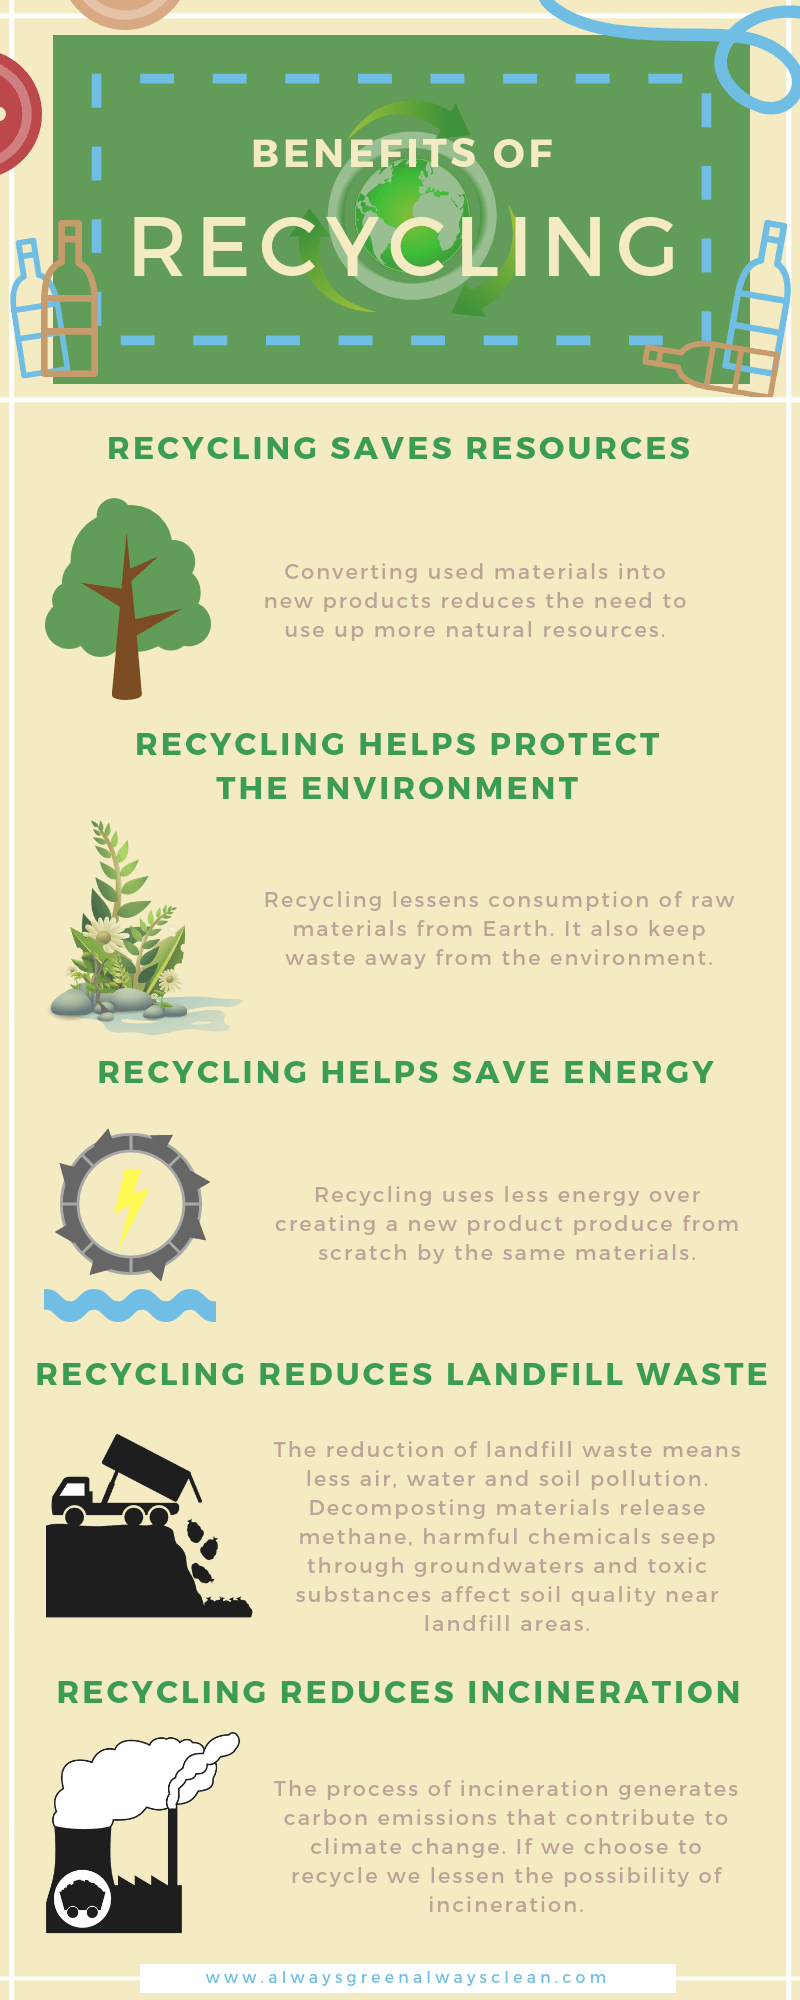 Benefits of Recycling